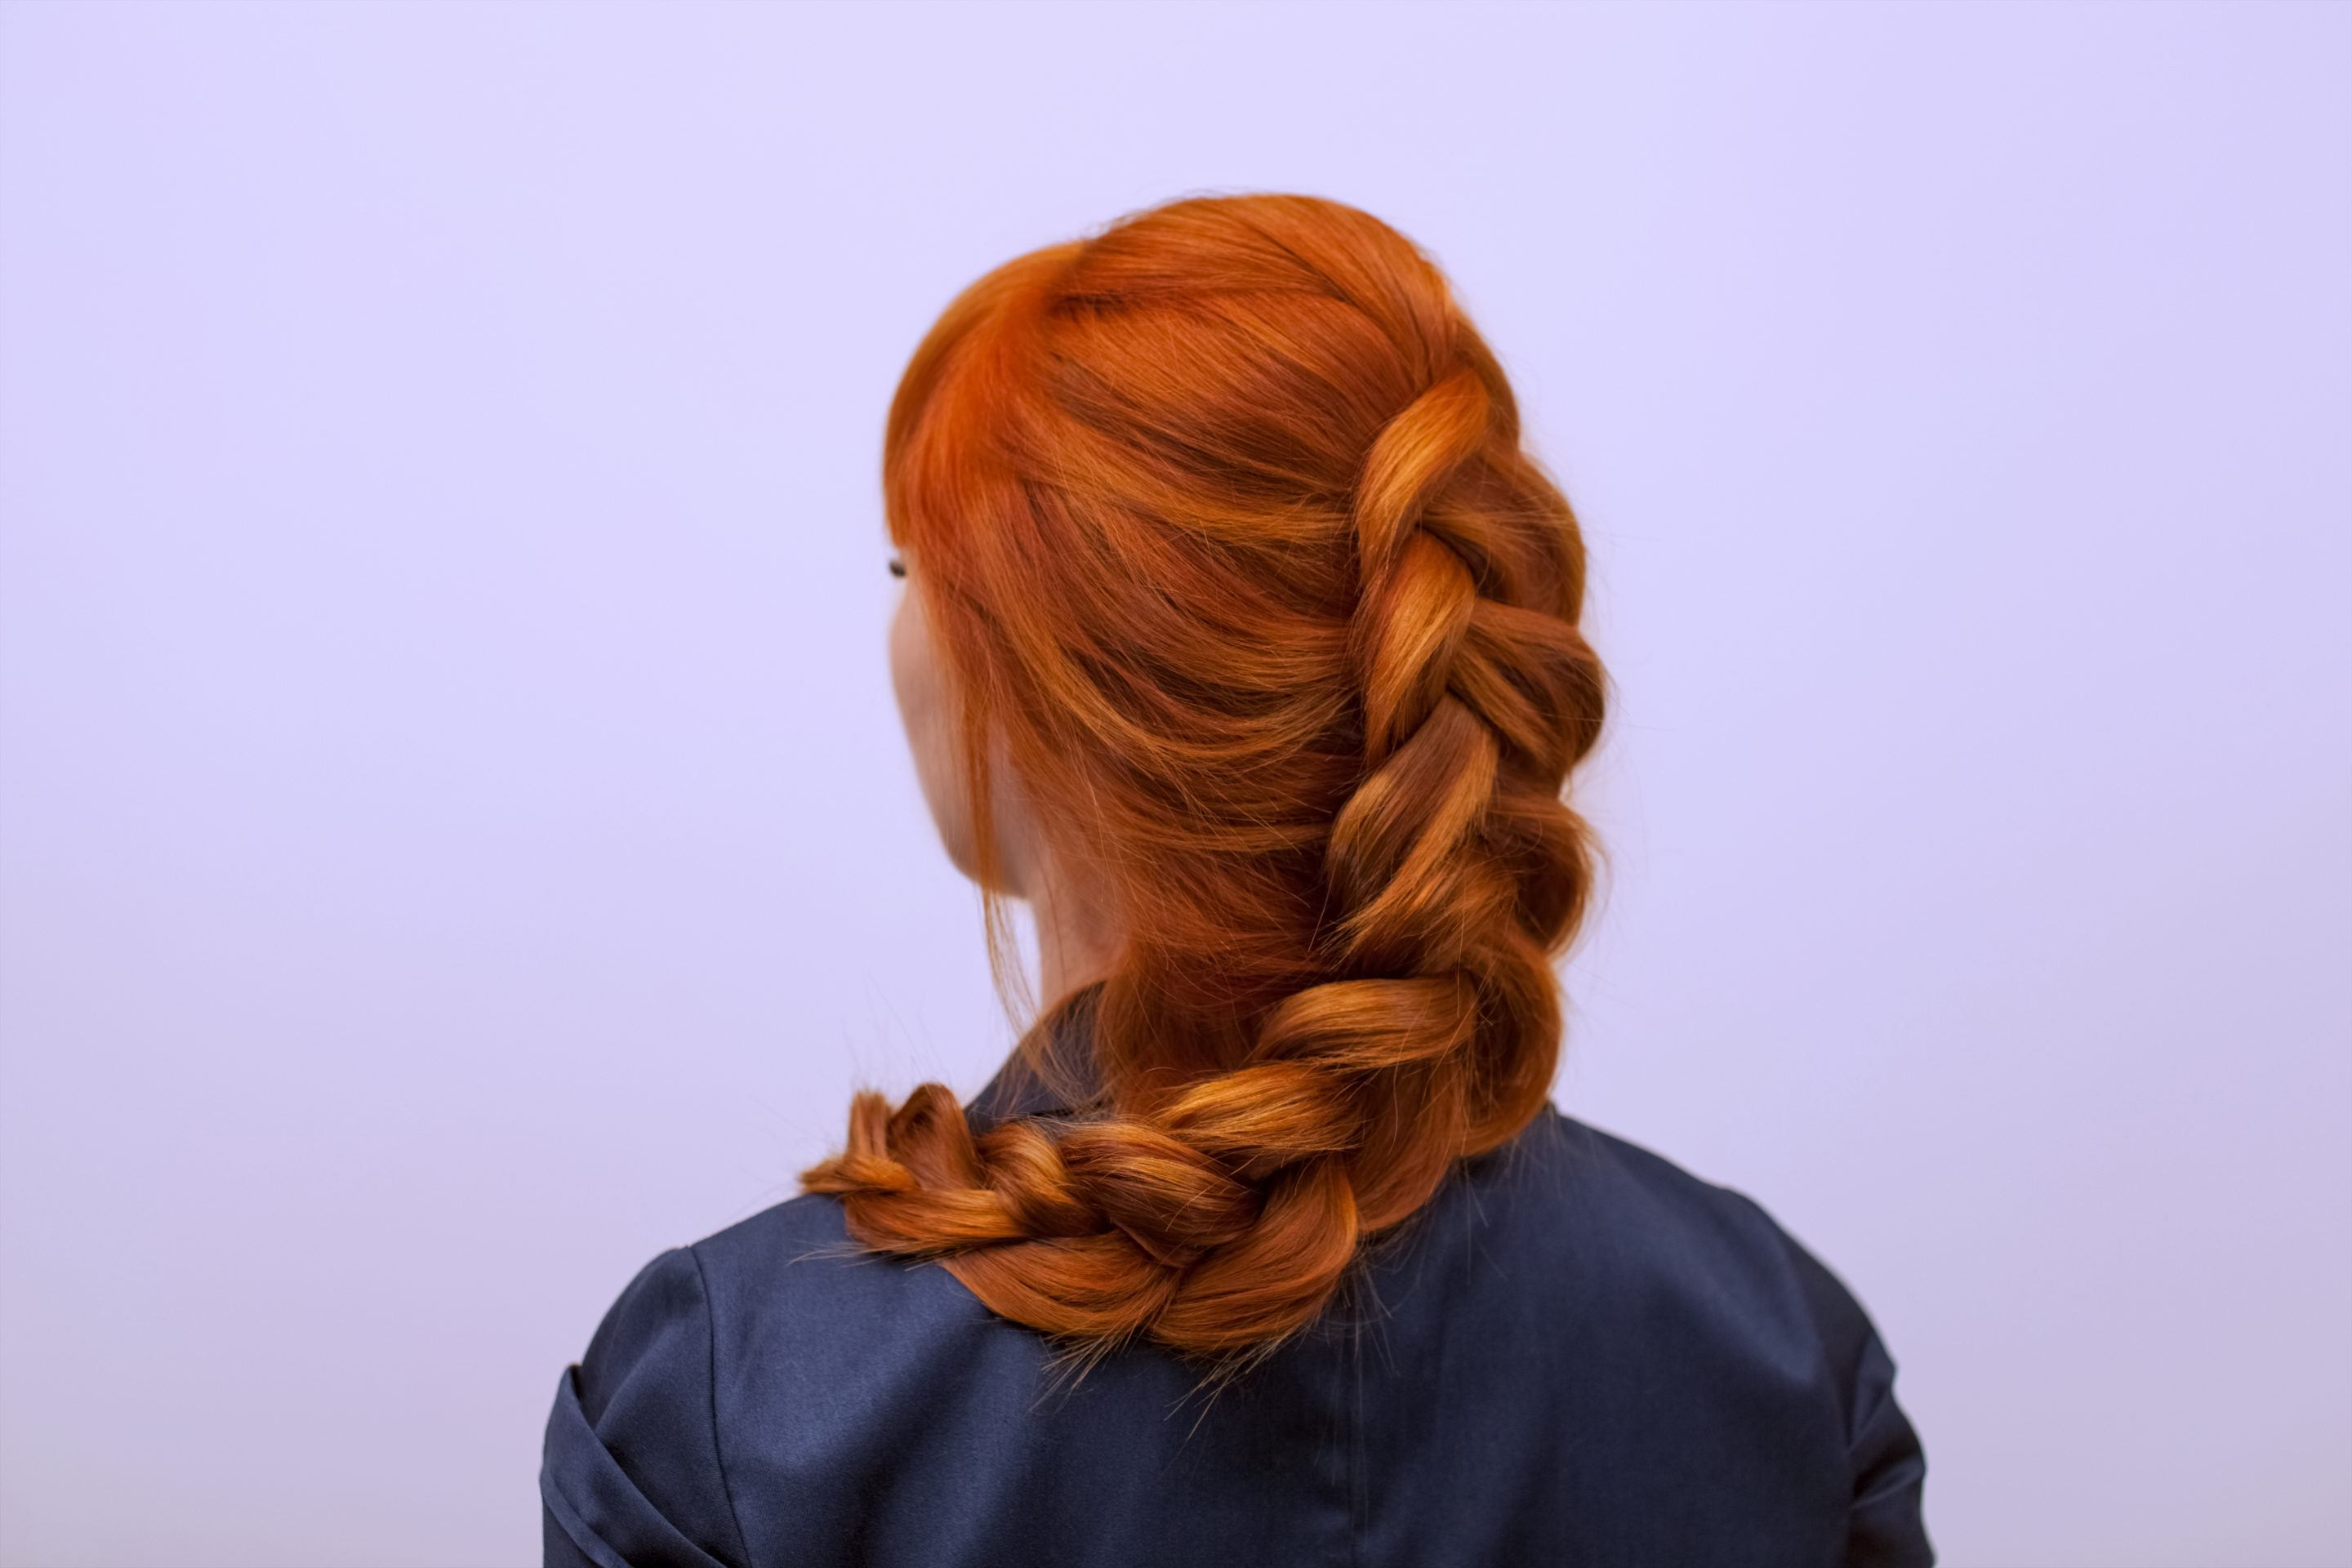 How to do Dutch braids worthy of Pinterest